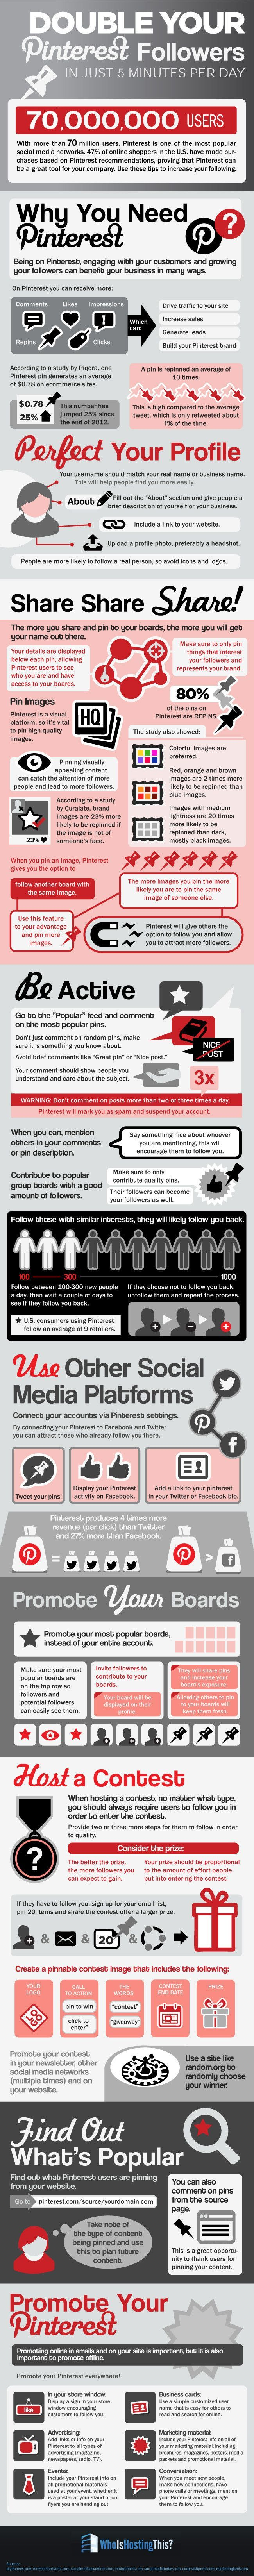 """SOCIAL MEDIA - """"How To increase your #Pinterest followers in just 5 Minutes per day - #infographic #socialmedia""""."""